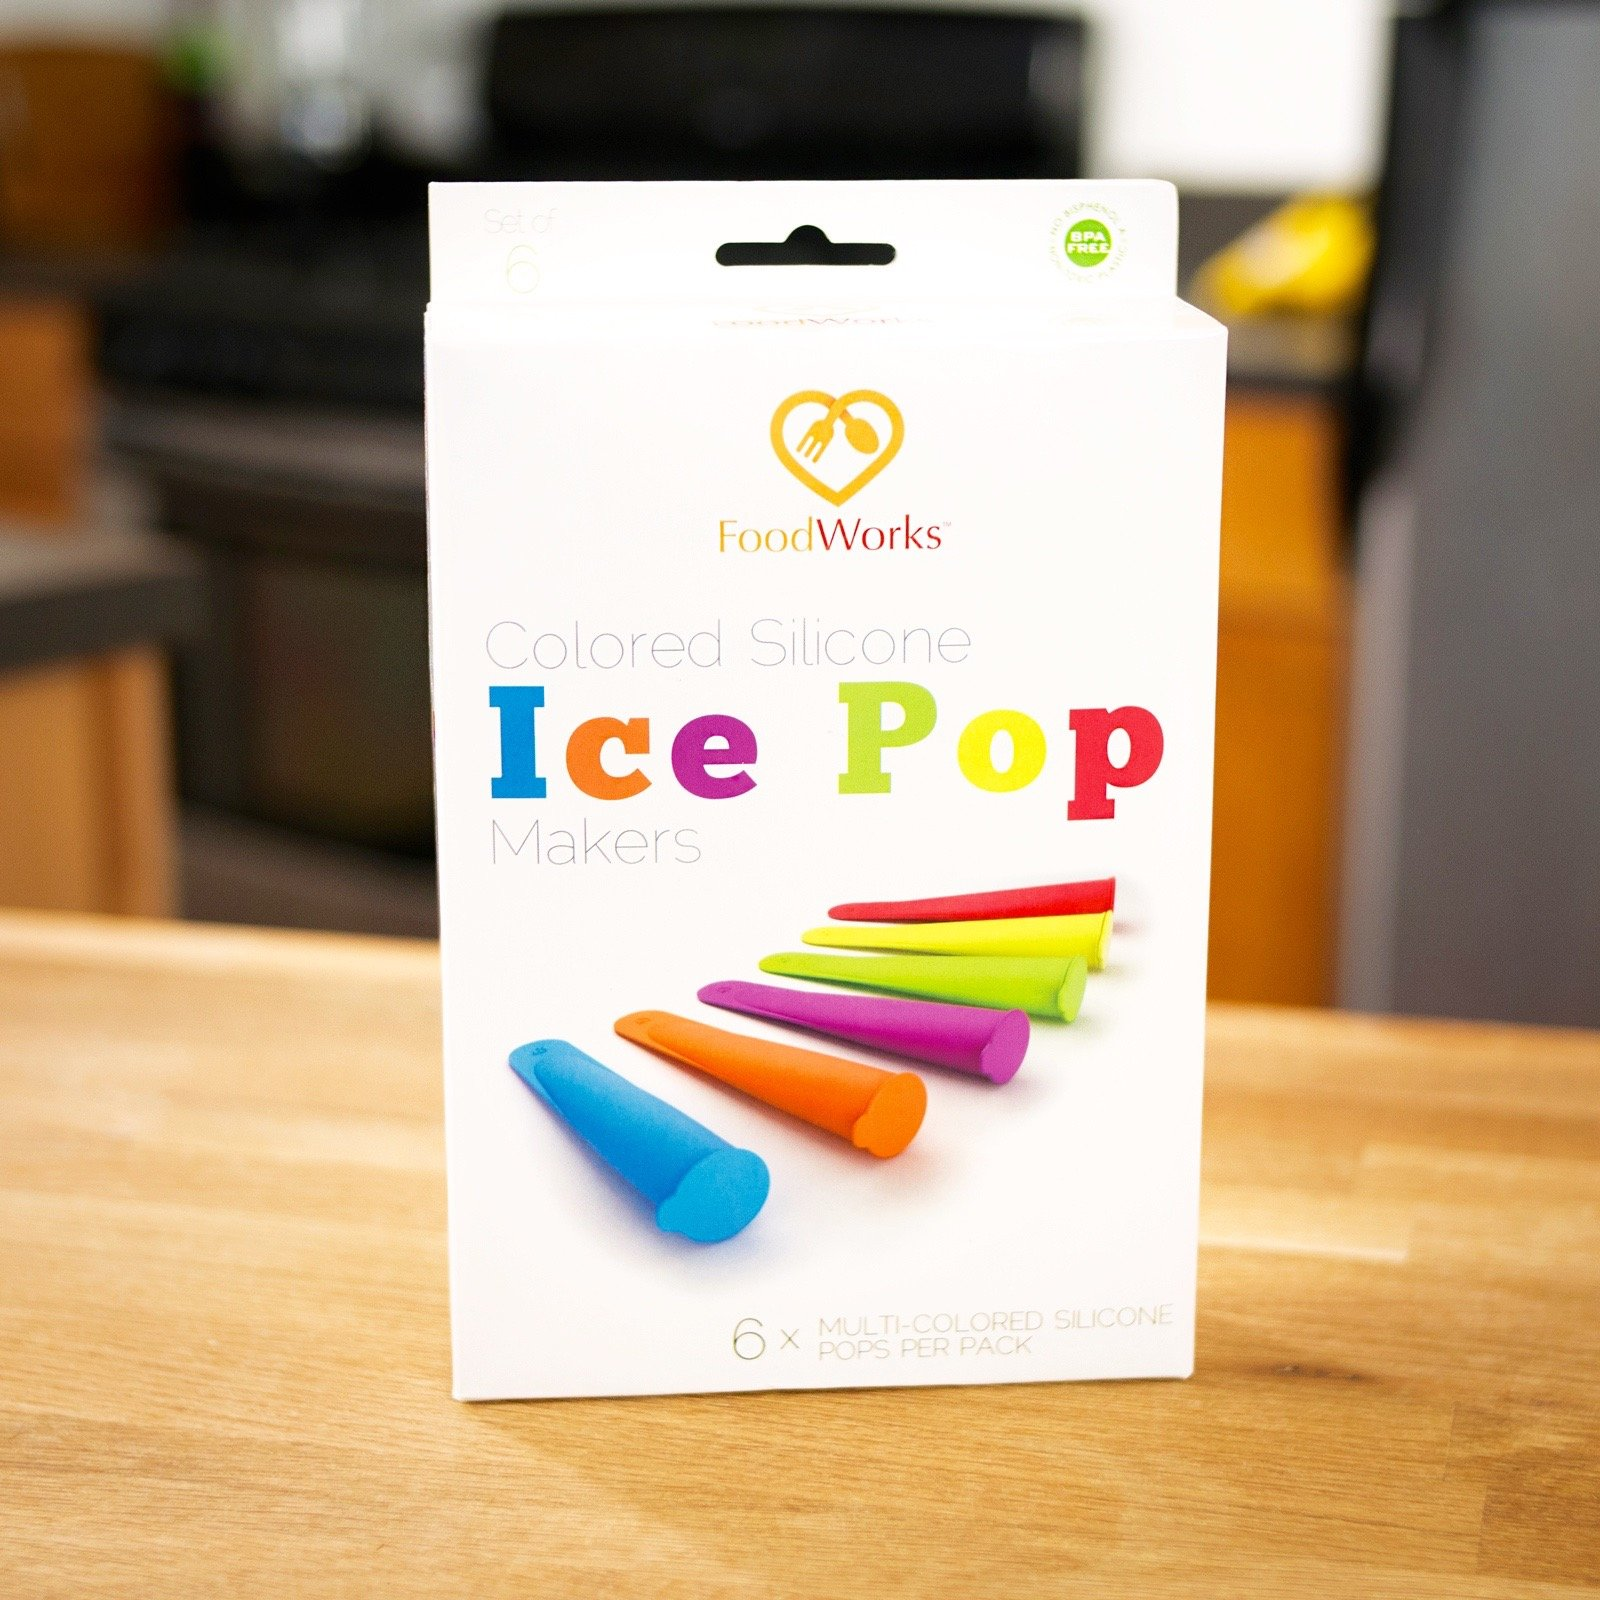 FoodWorks Silicone Ice Pop Maker Molds/Popsicle Molds, Set of 6 by FoodWorks (Image #7)